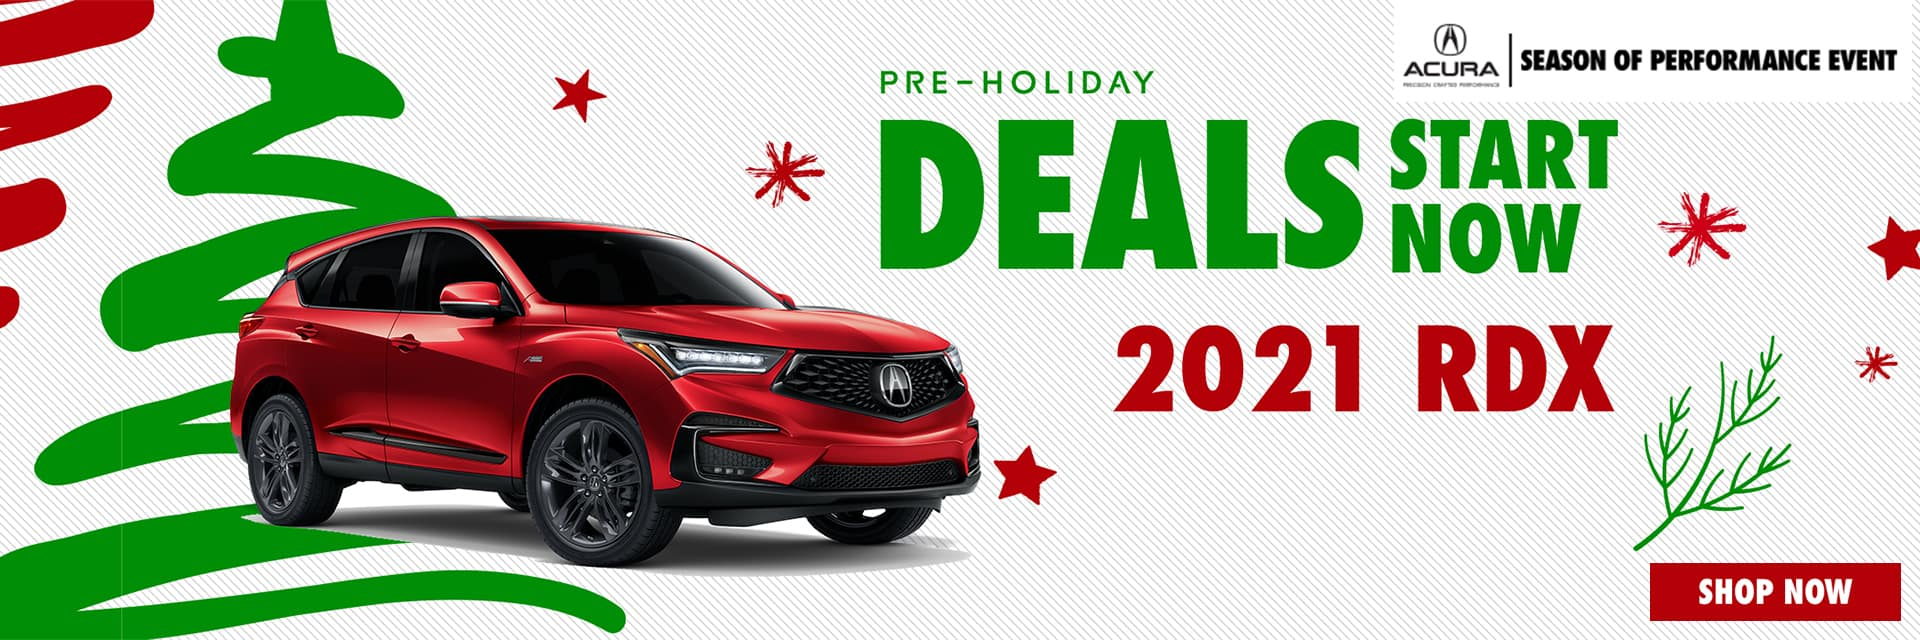 1920x640_CA_20058_Acura_Pre-Holiday Non-Offer_CTROT_DAA RDX